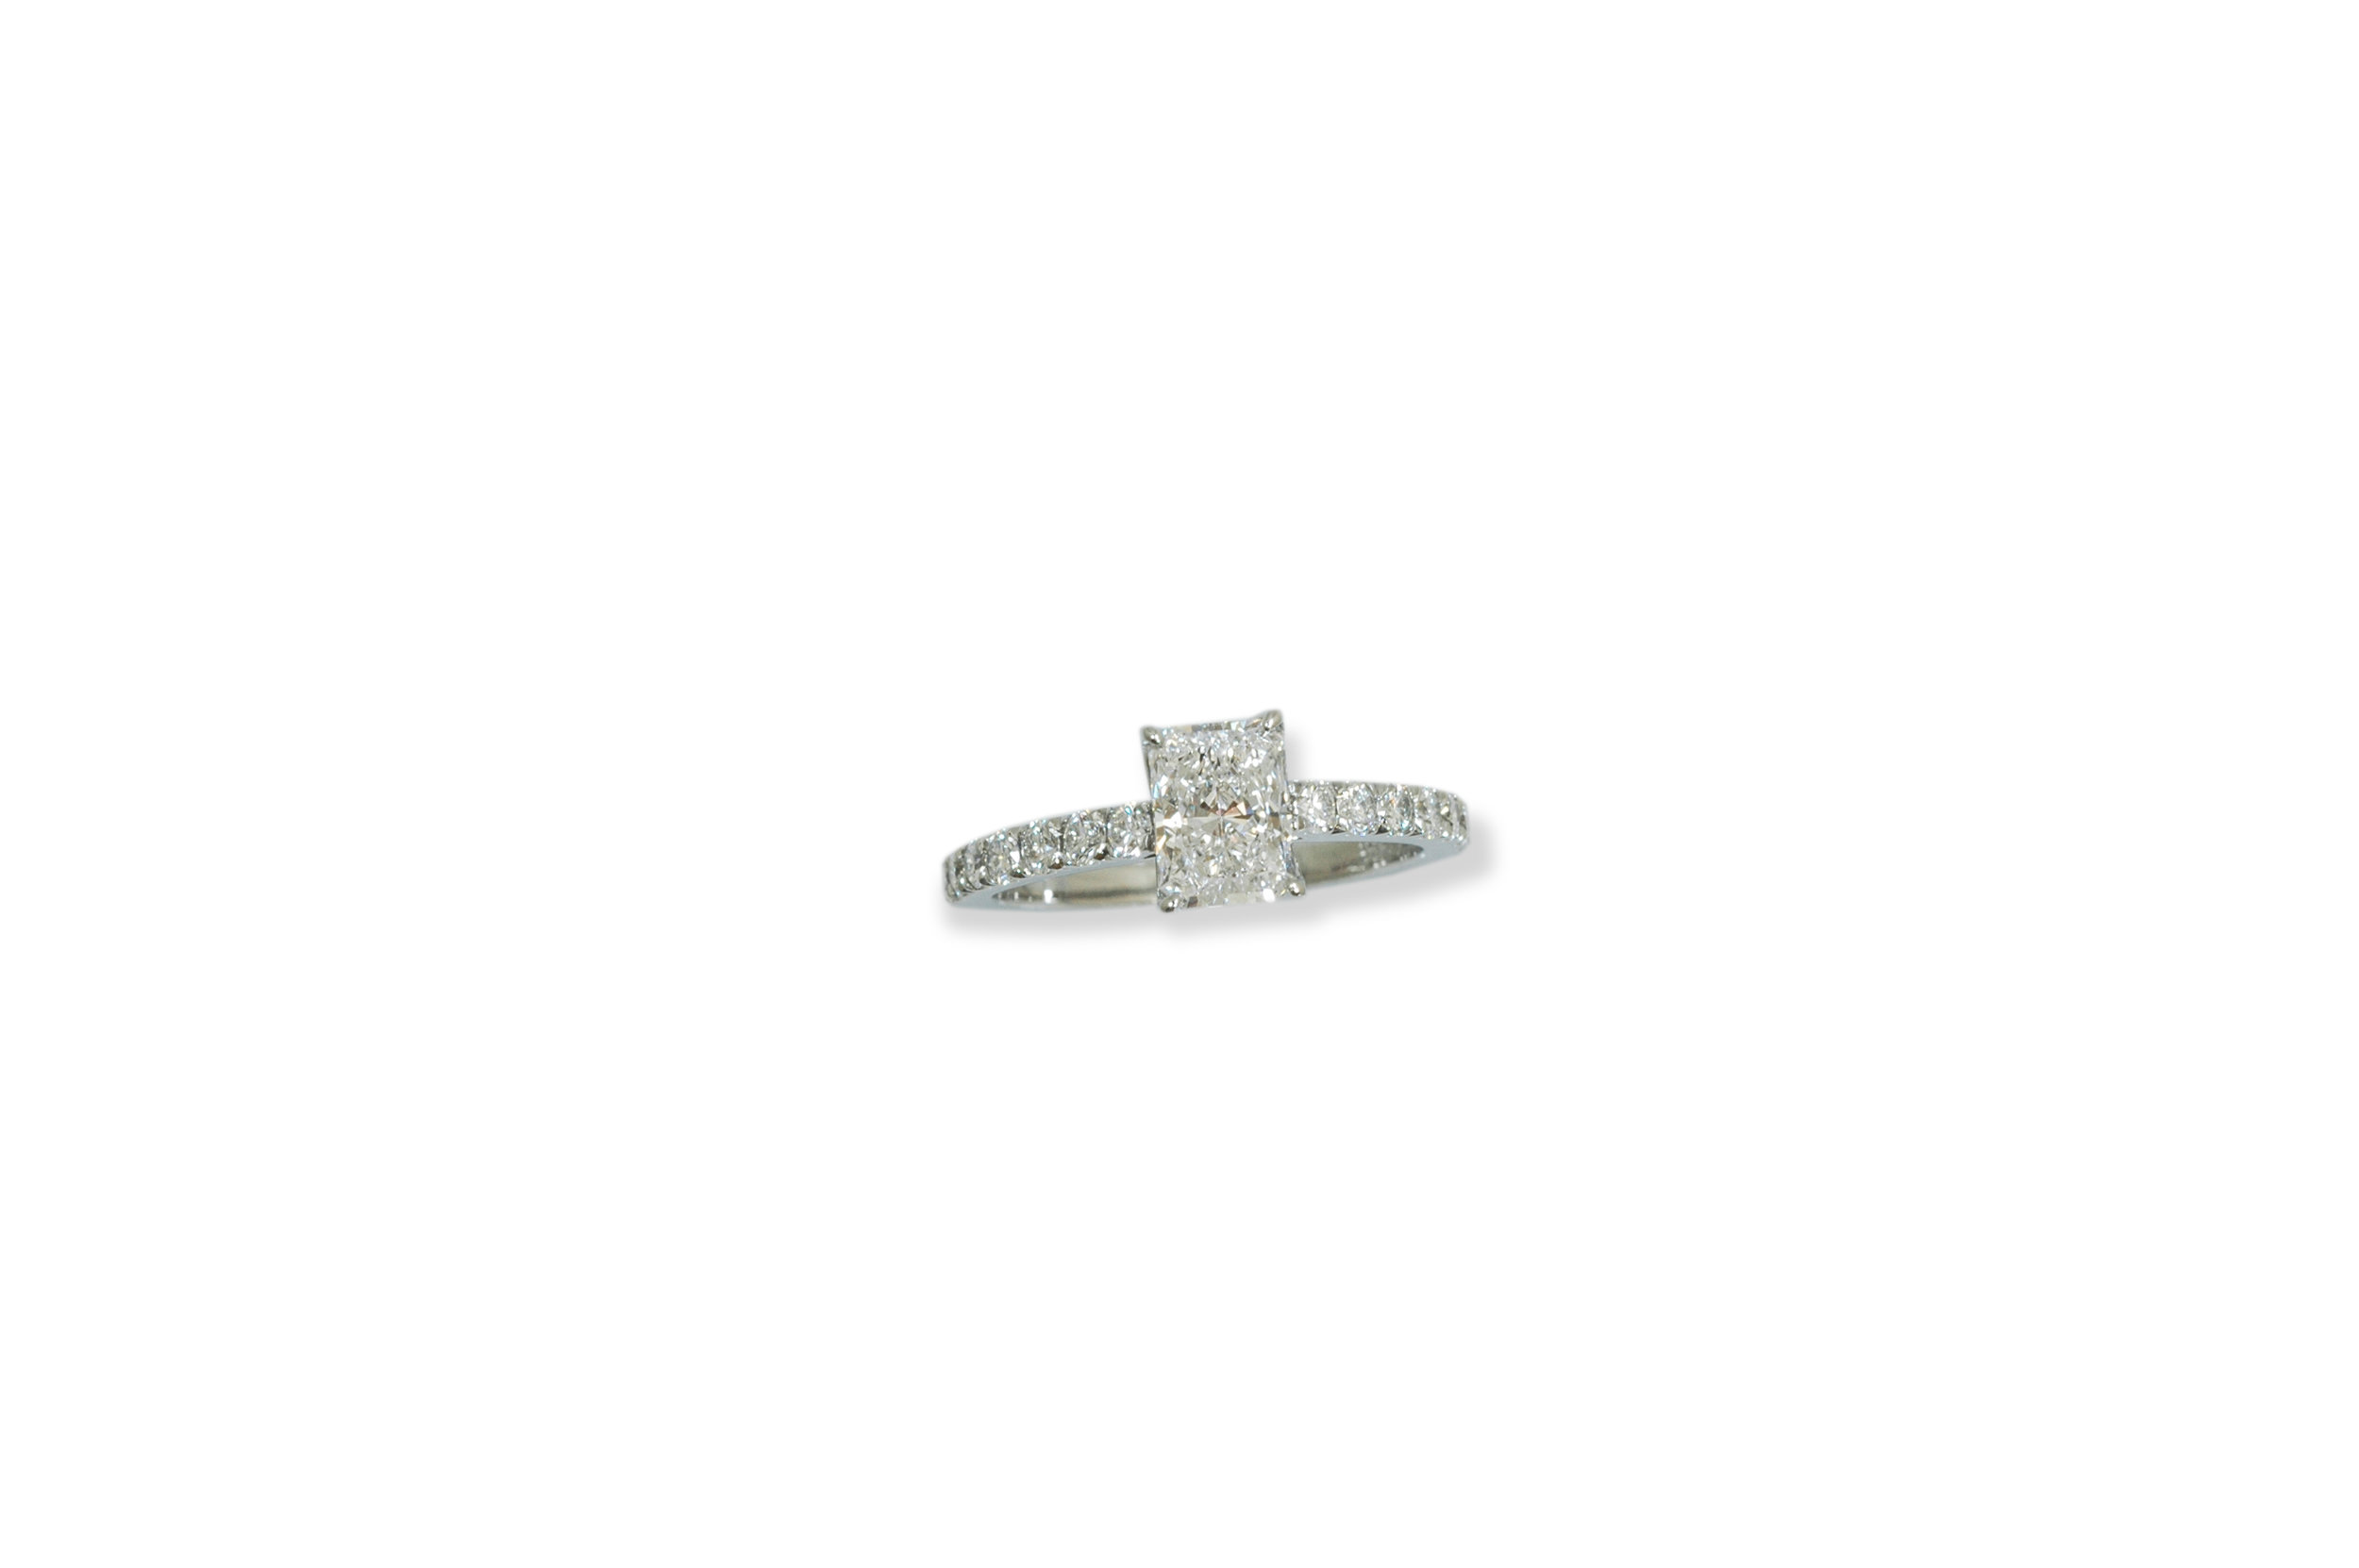 Engagement ring in platinum with a radiant cut Diamond in the center and brilliant cut diamonds on the band.